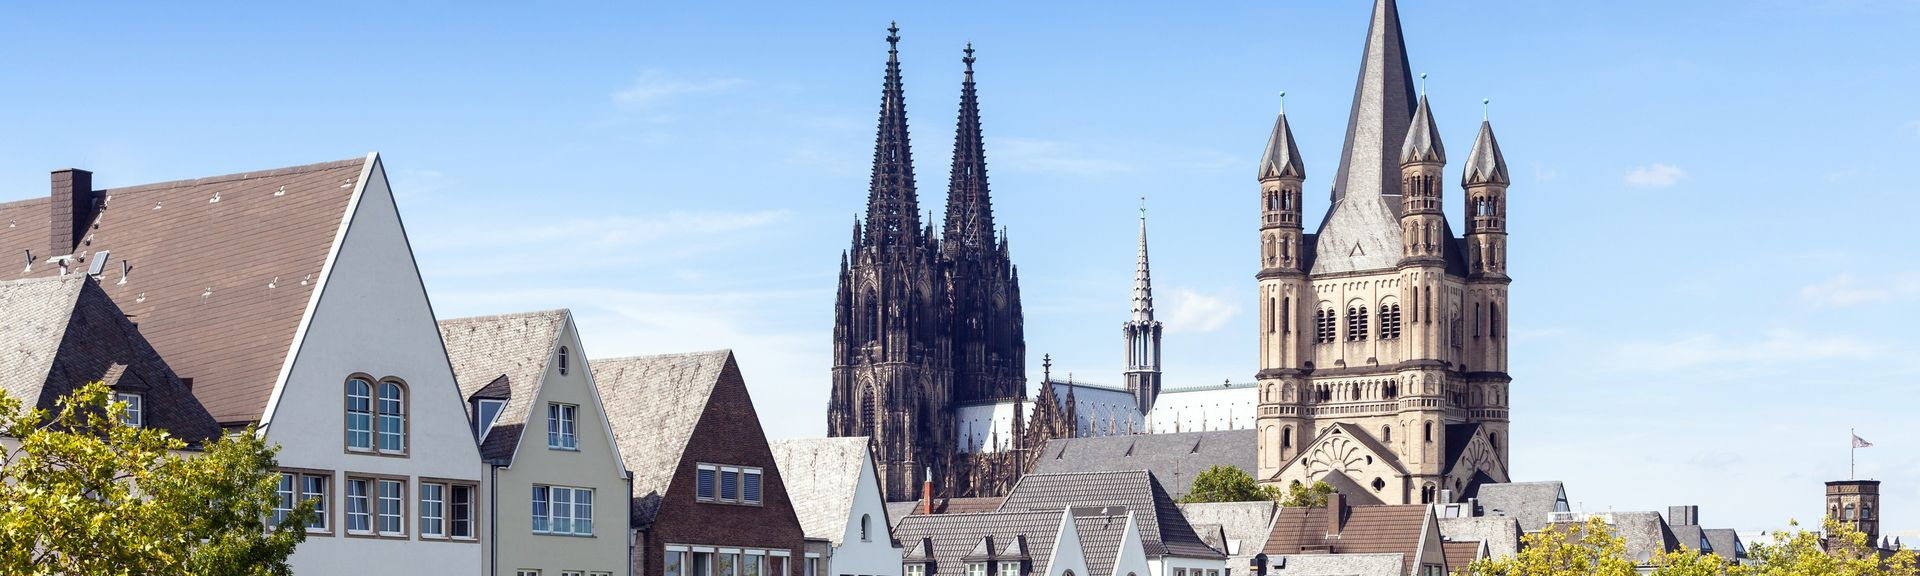 Cologne, North Rhine-Westphalia, Germany